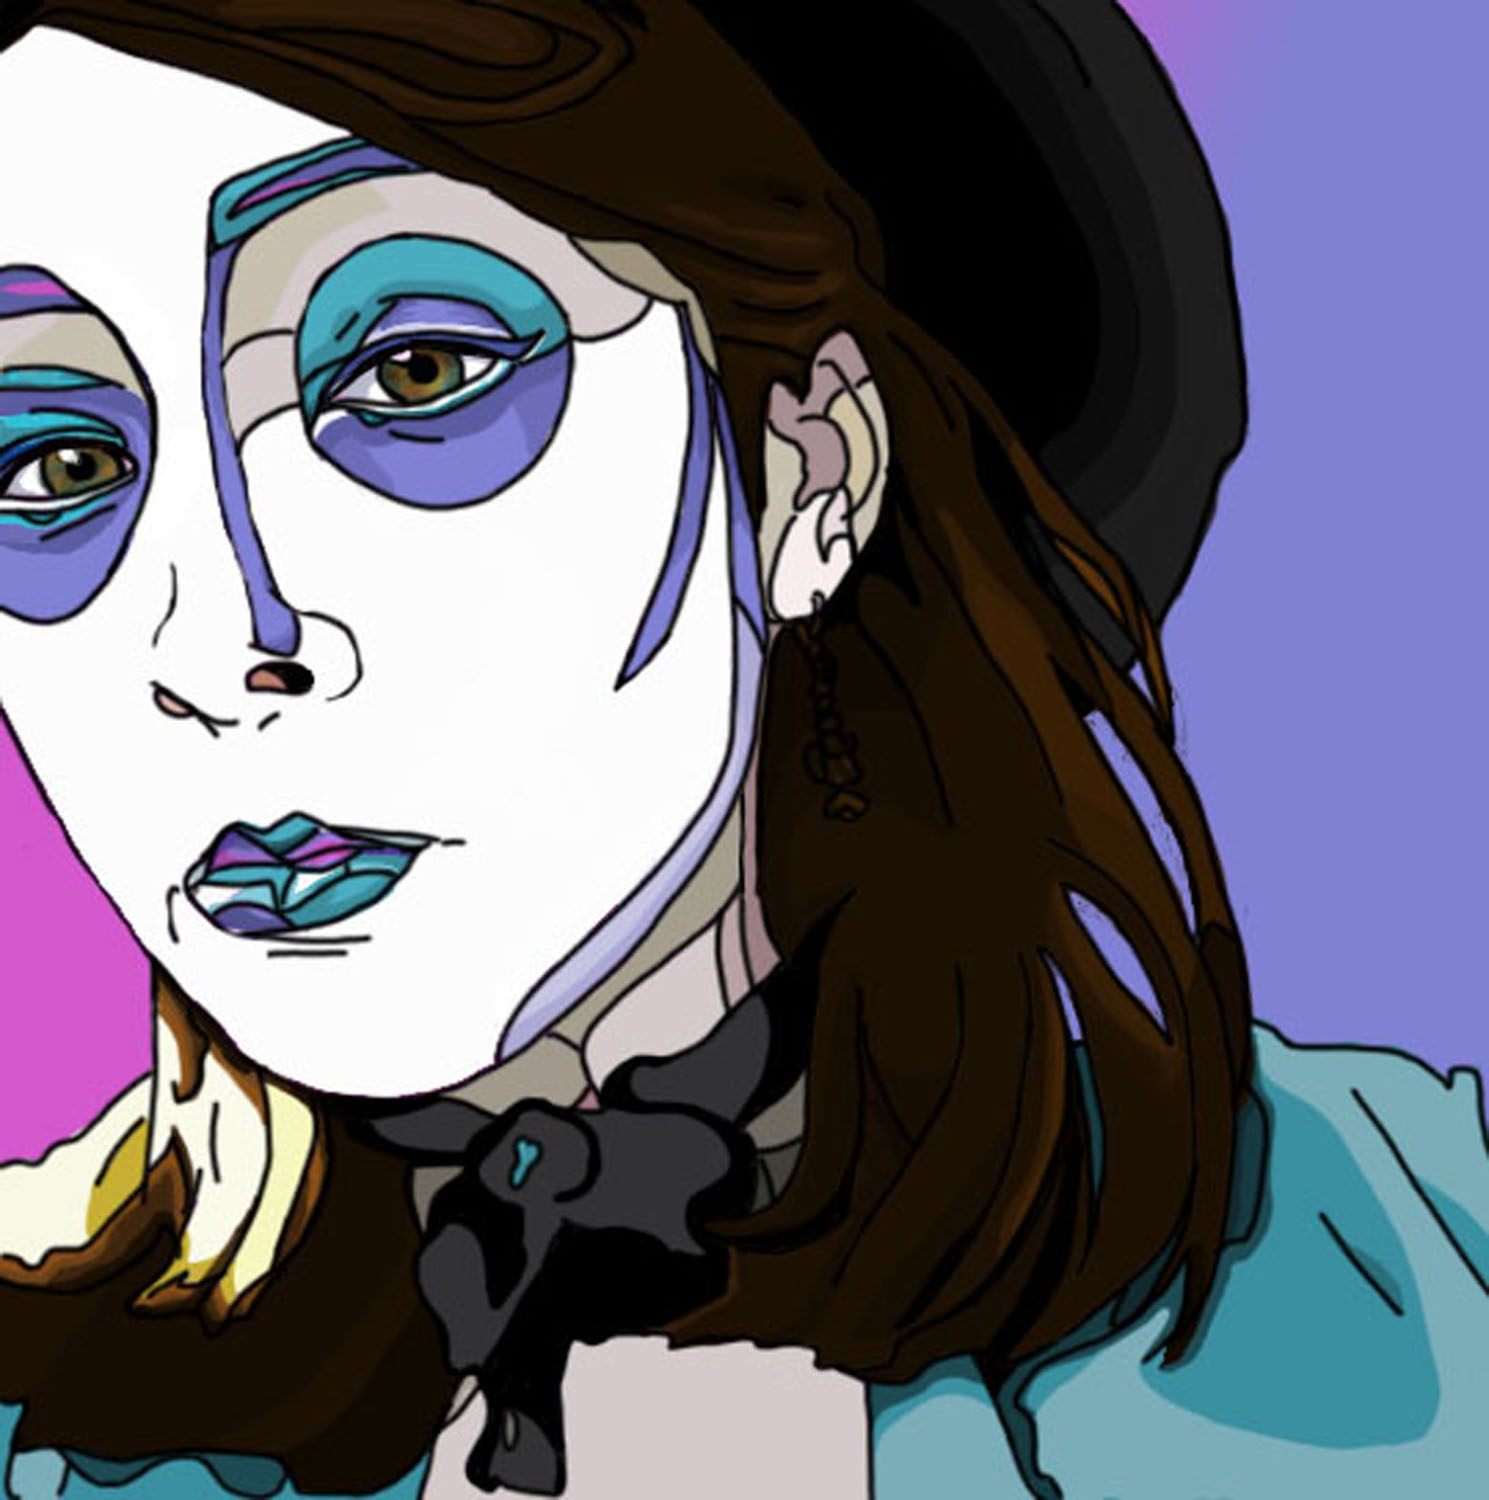 A graphic-art style self portrait done in black purple, teal, white and magenta colors.